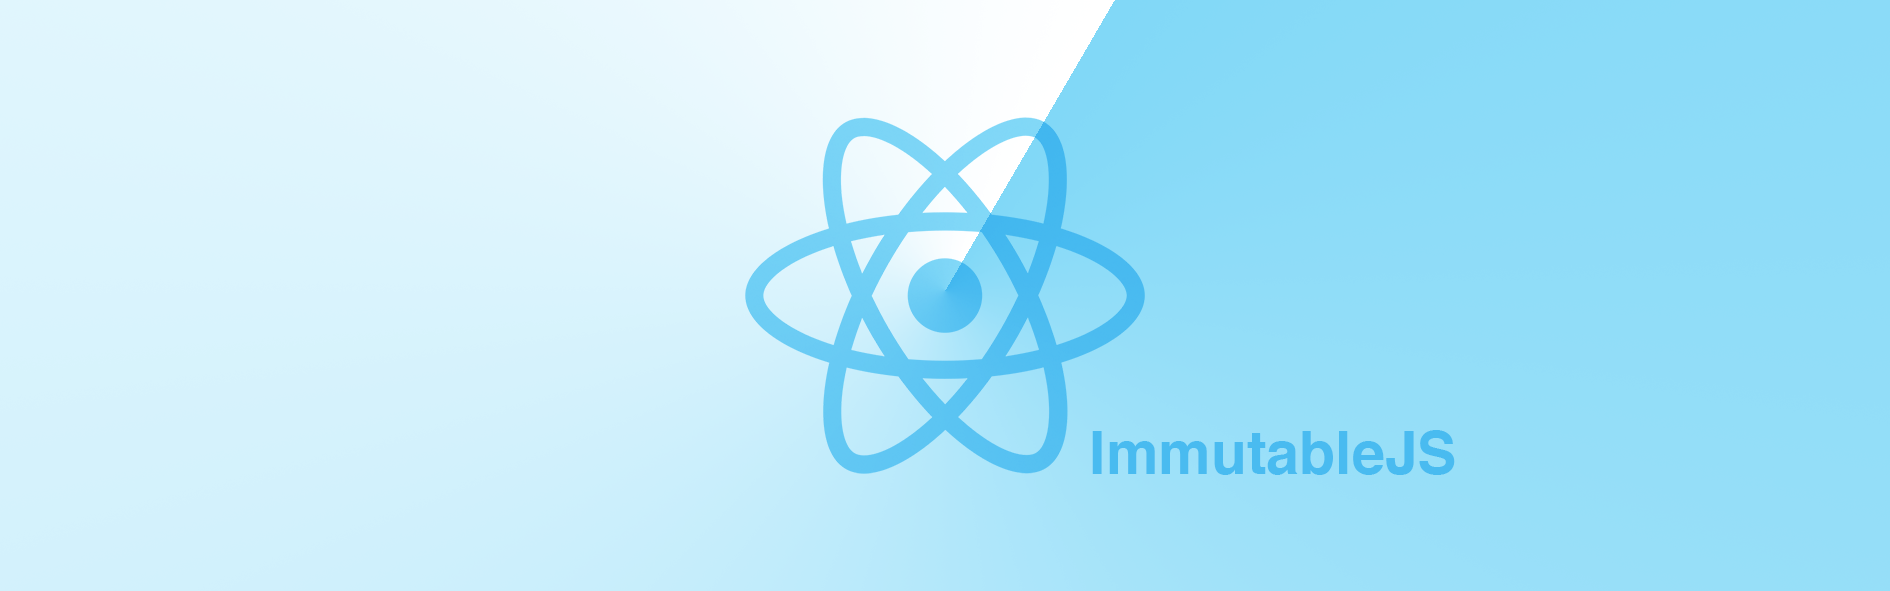 Why I don't like ImmutableJS in React - ITNEXT